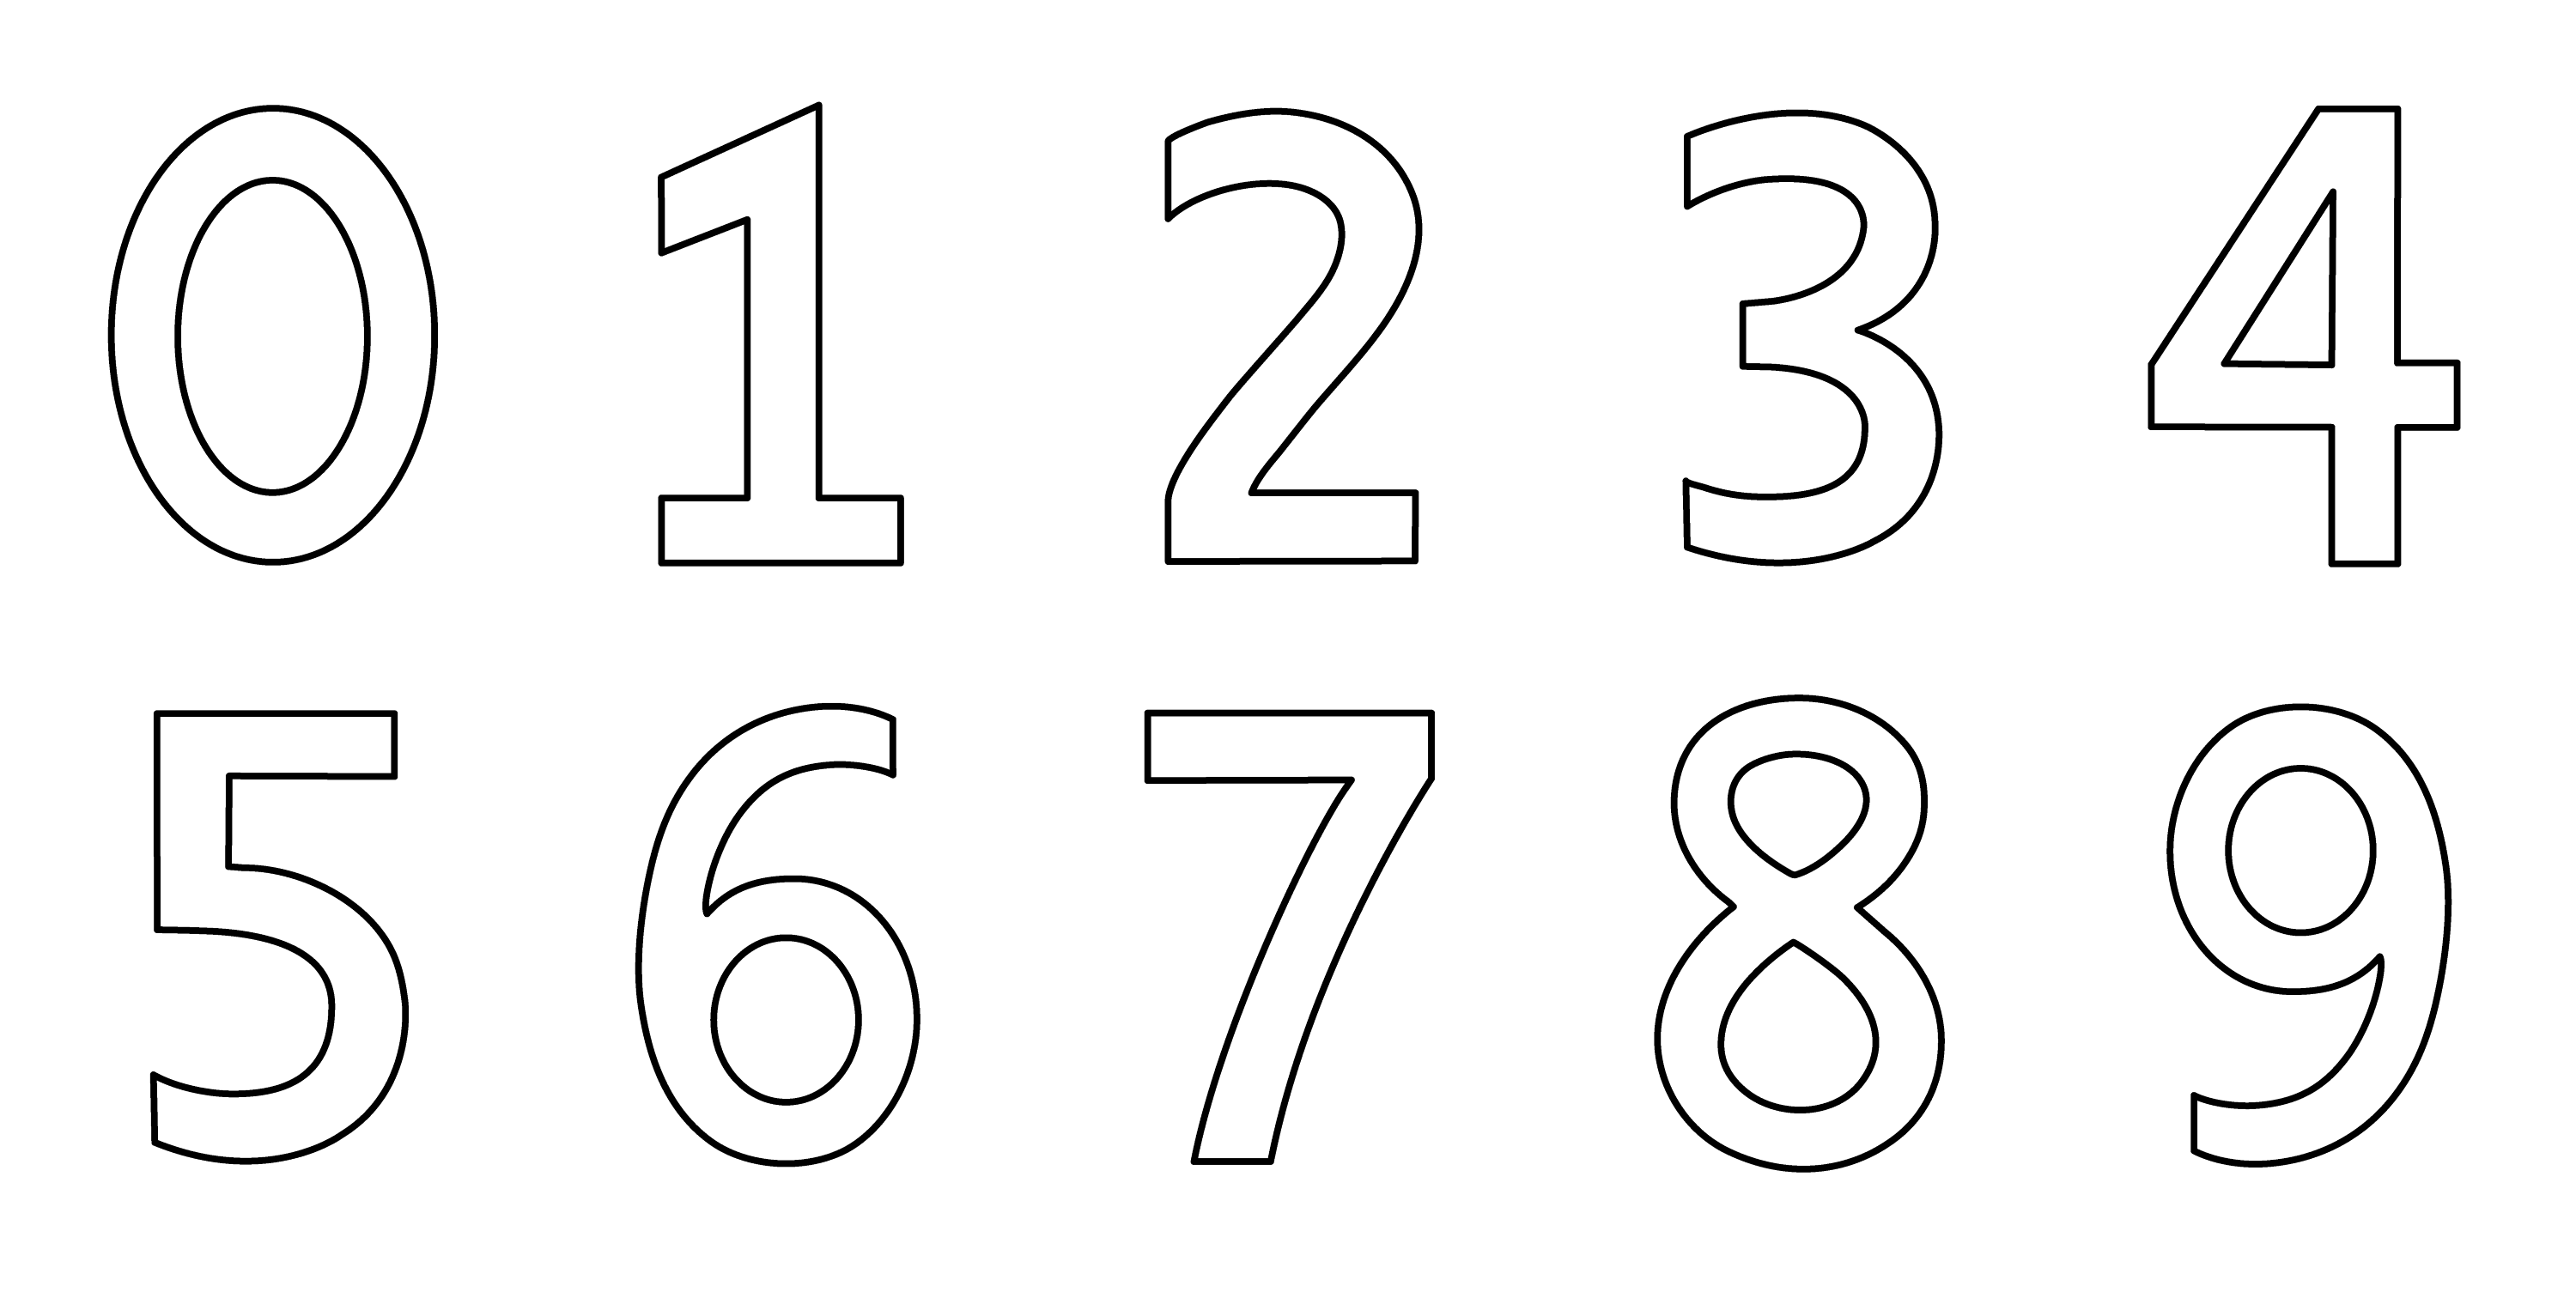 numbers coloring page - Number Coloring Pages